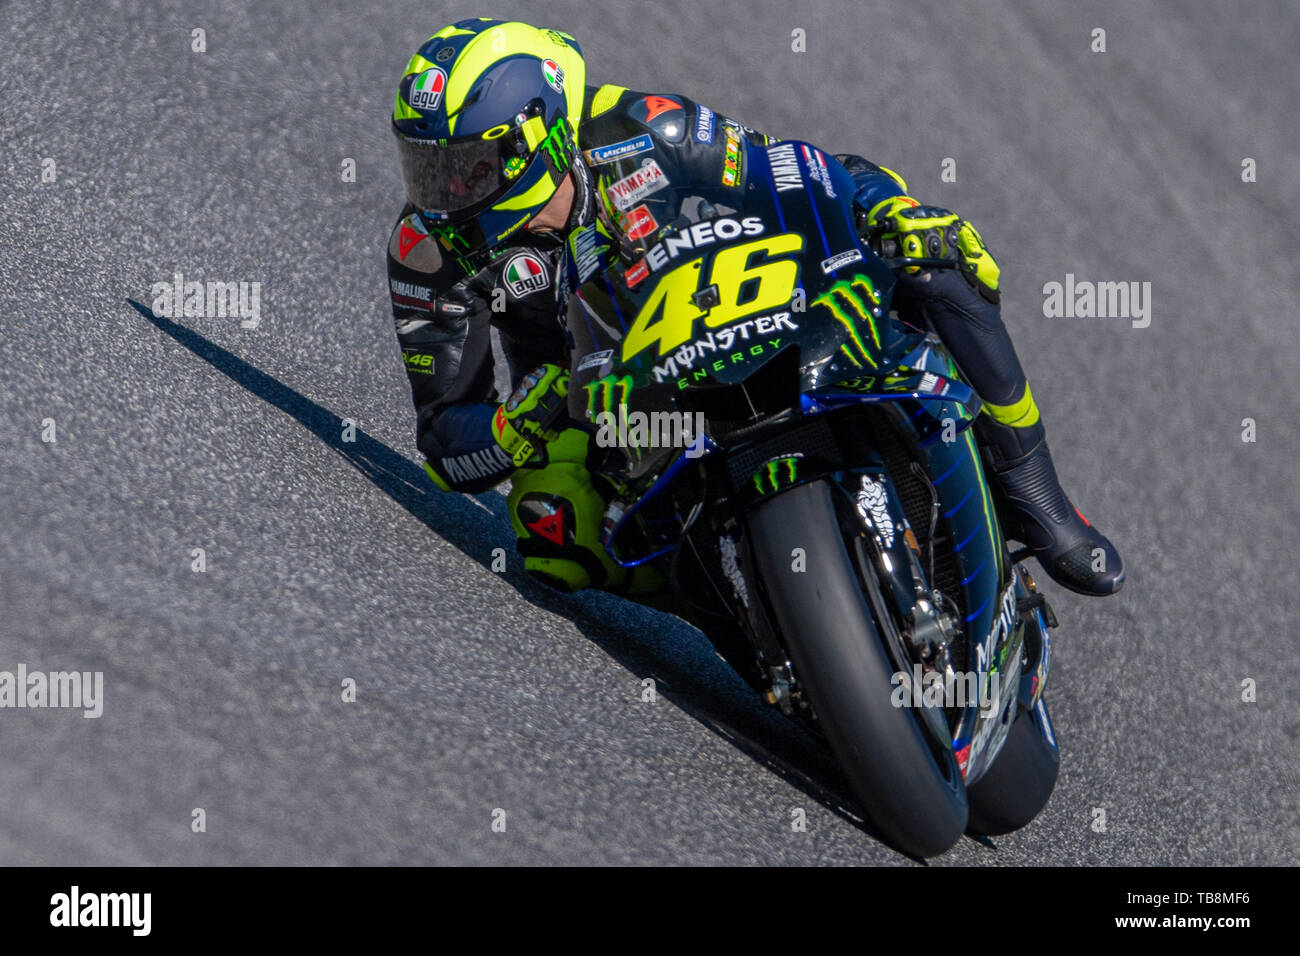 valentino rossi high resolution stock photography and images alamy https www alamy com mugello italy 31st may 2019 46 valentino rossi during the fp1 credit independent photo agencyalamy live news image247898090 html